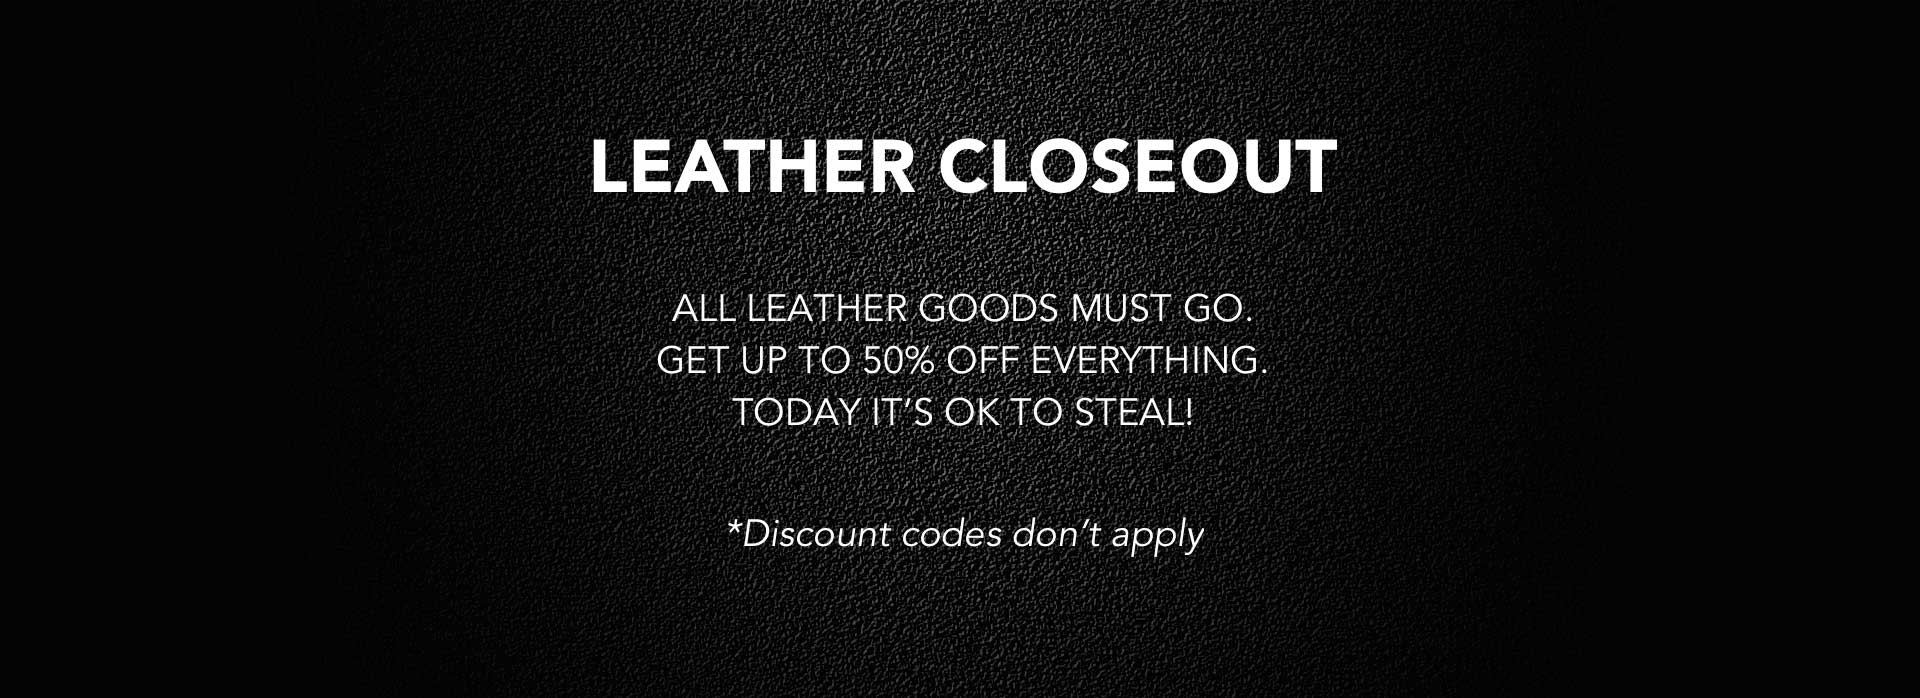 Leather Closeout Sale